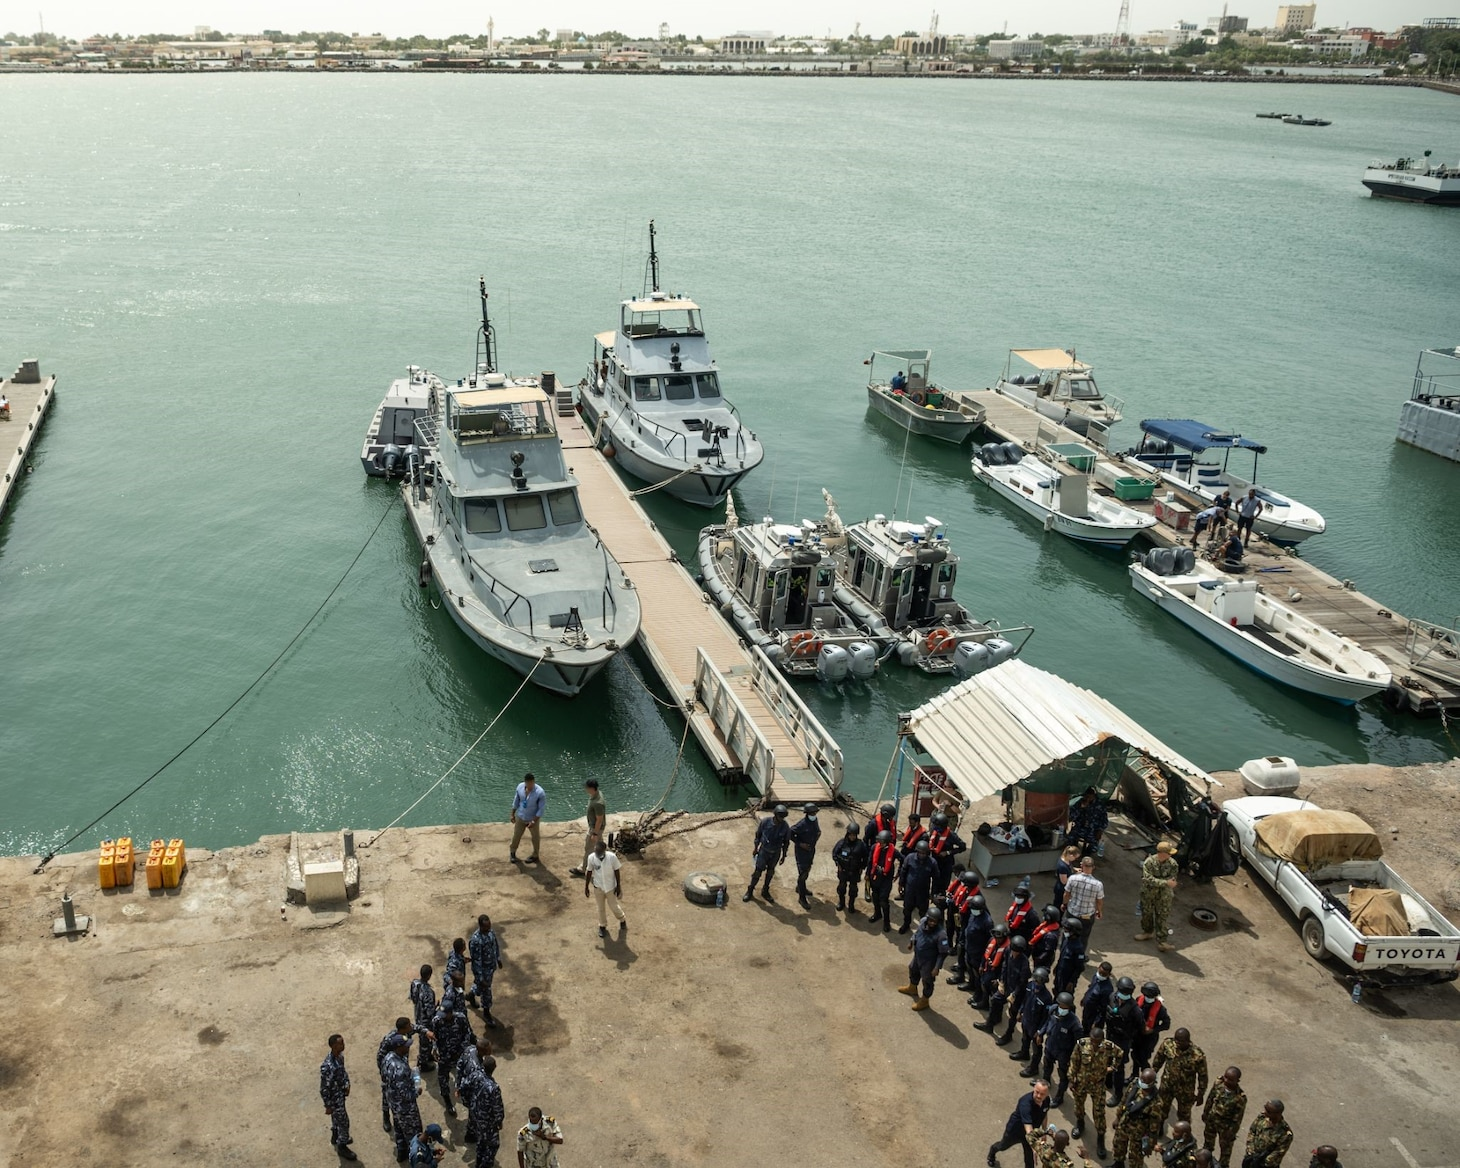 (Aug. 2, 2021) Djiboutian, Somalian, Comorian and U.S. service members review visit, board, search and seizure (VBSS) procedures before practicing simulated scenarios during exercise Cutlass Express 2021 at L'Escale Marina, Djibouti, Aug. 2, 2021. VBSS is conducted to capture and control a suspected enemy vessel to combat terrorism, piracy and smuggling operations at sea. Exercise Cutlass Express, sponsored by U.S. Africa Command and facilitated by U.S. Naval Forces Europe and Africa/U.S. Sixth Fleet, is designed to improve regional cooperation, maritime domain awareness and information sharing practices to increase capabilities between the U.S., East African and Western Indian Ocean nations to counter illicit maritime activity.